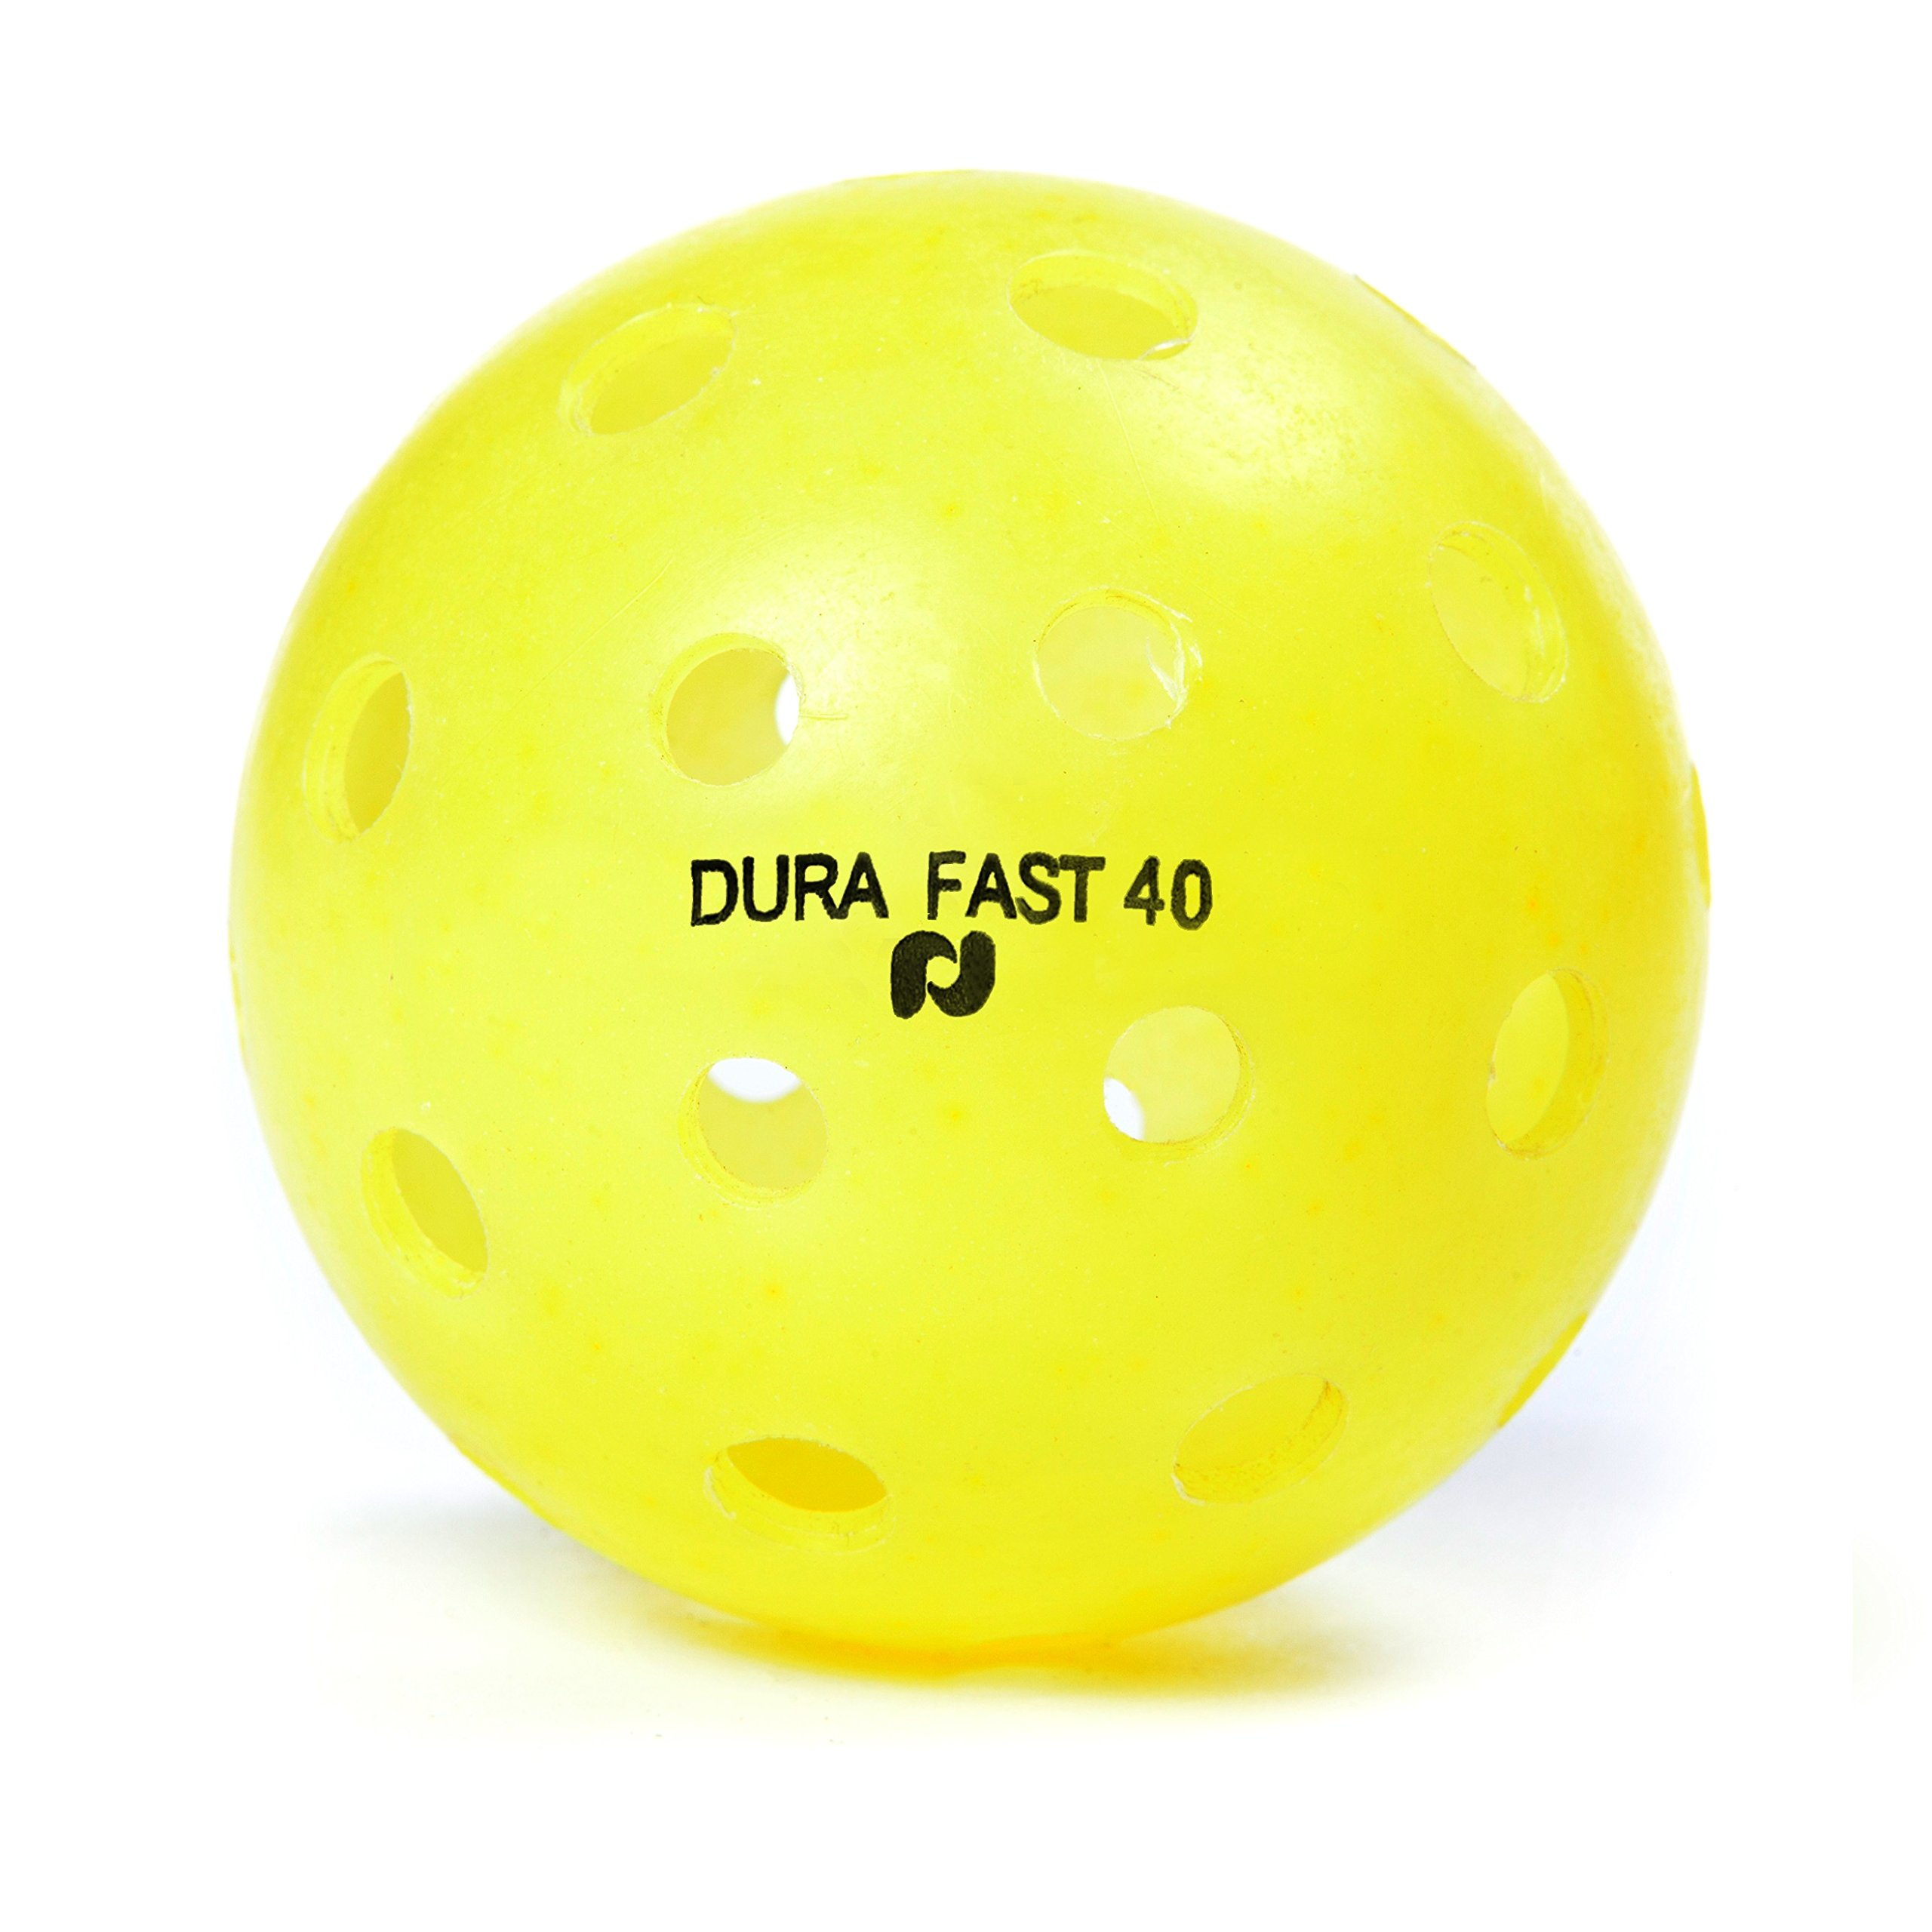 Dura Fast 40 Pickleballs | Outdoor pickleball balls | Yellow| Pack of 6 | USAPA Approved and Sanctioned for Tournament Play, Professional Perfomance by Pickle-Ball